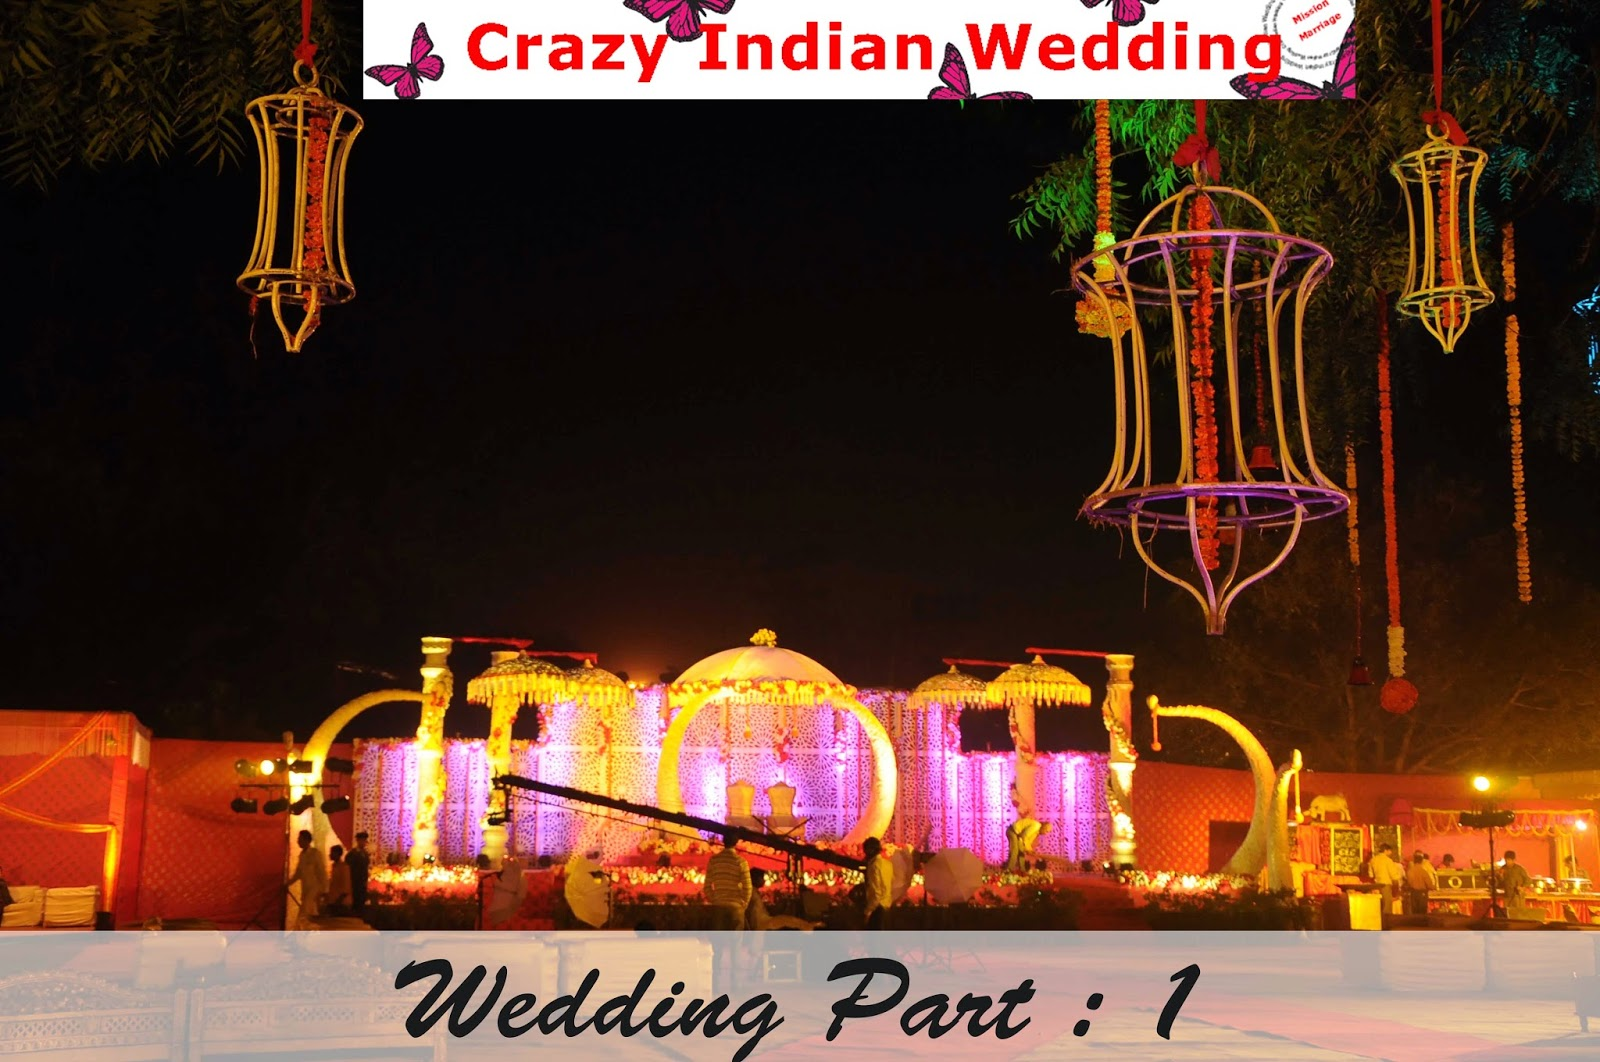 Crazy Indian Wedding grand indian wedding